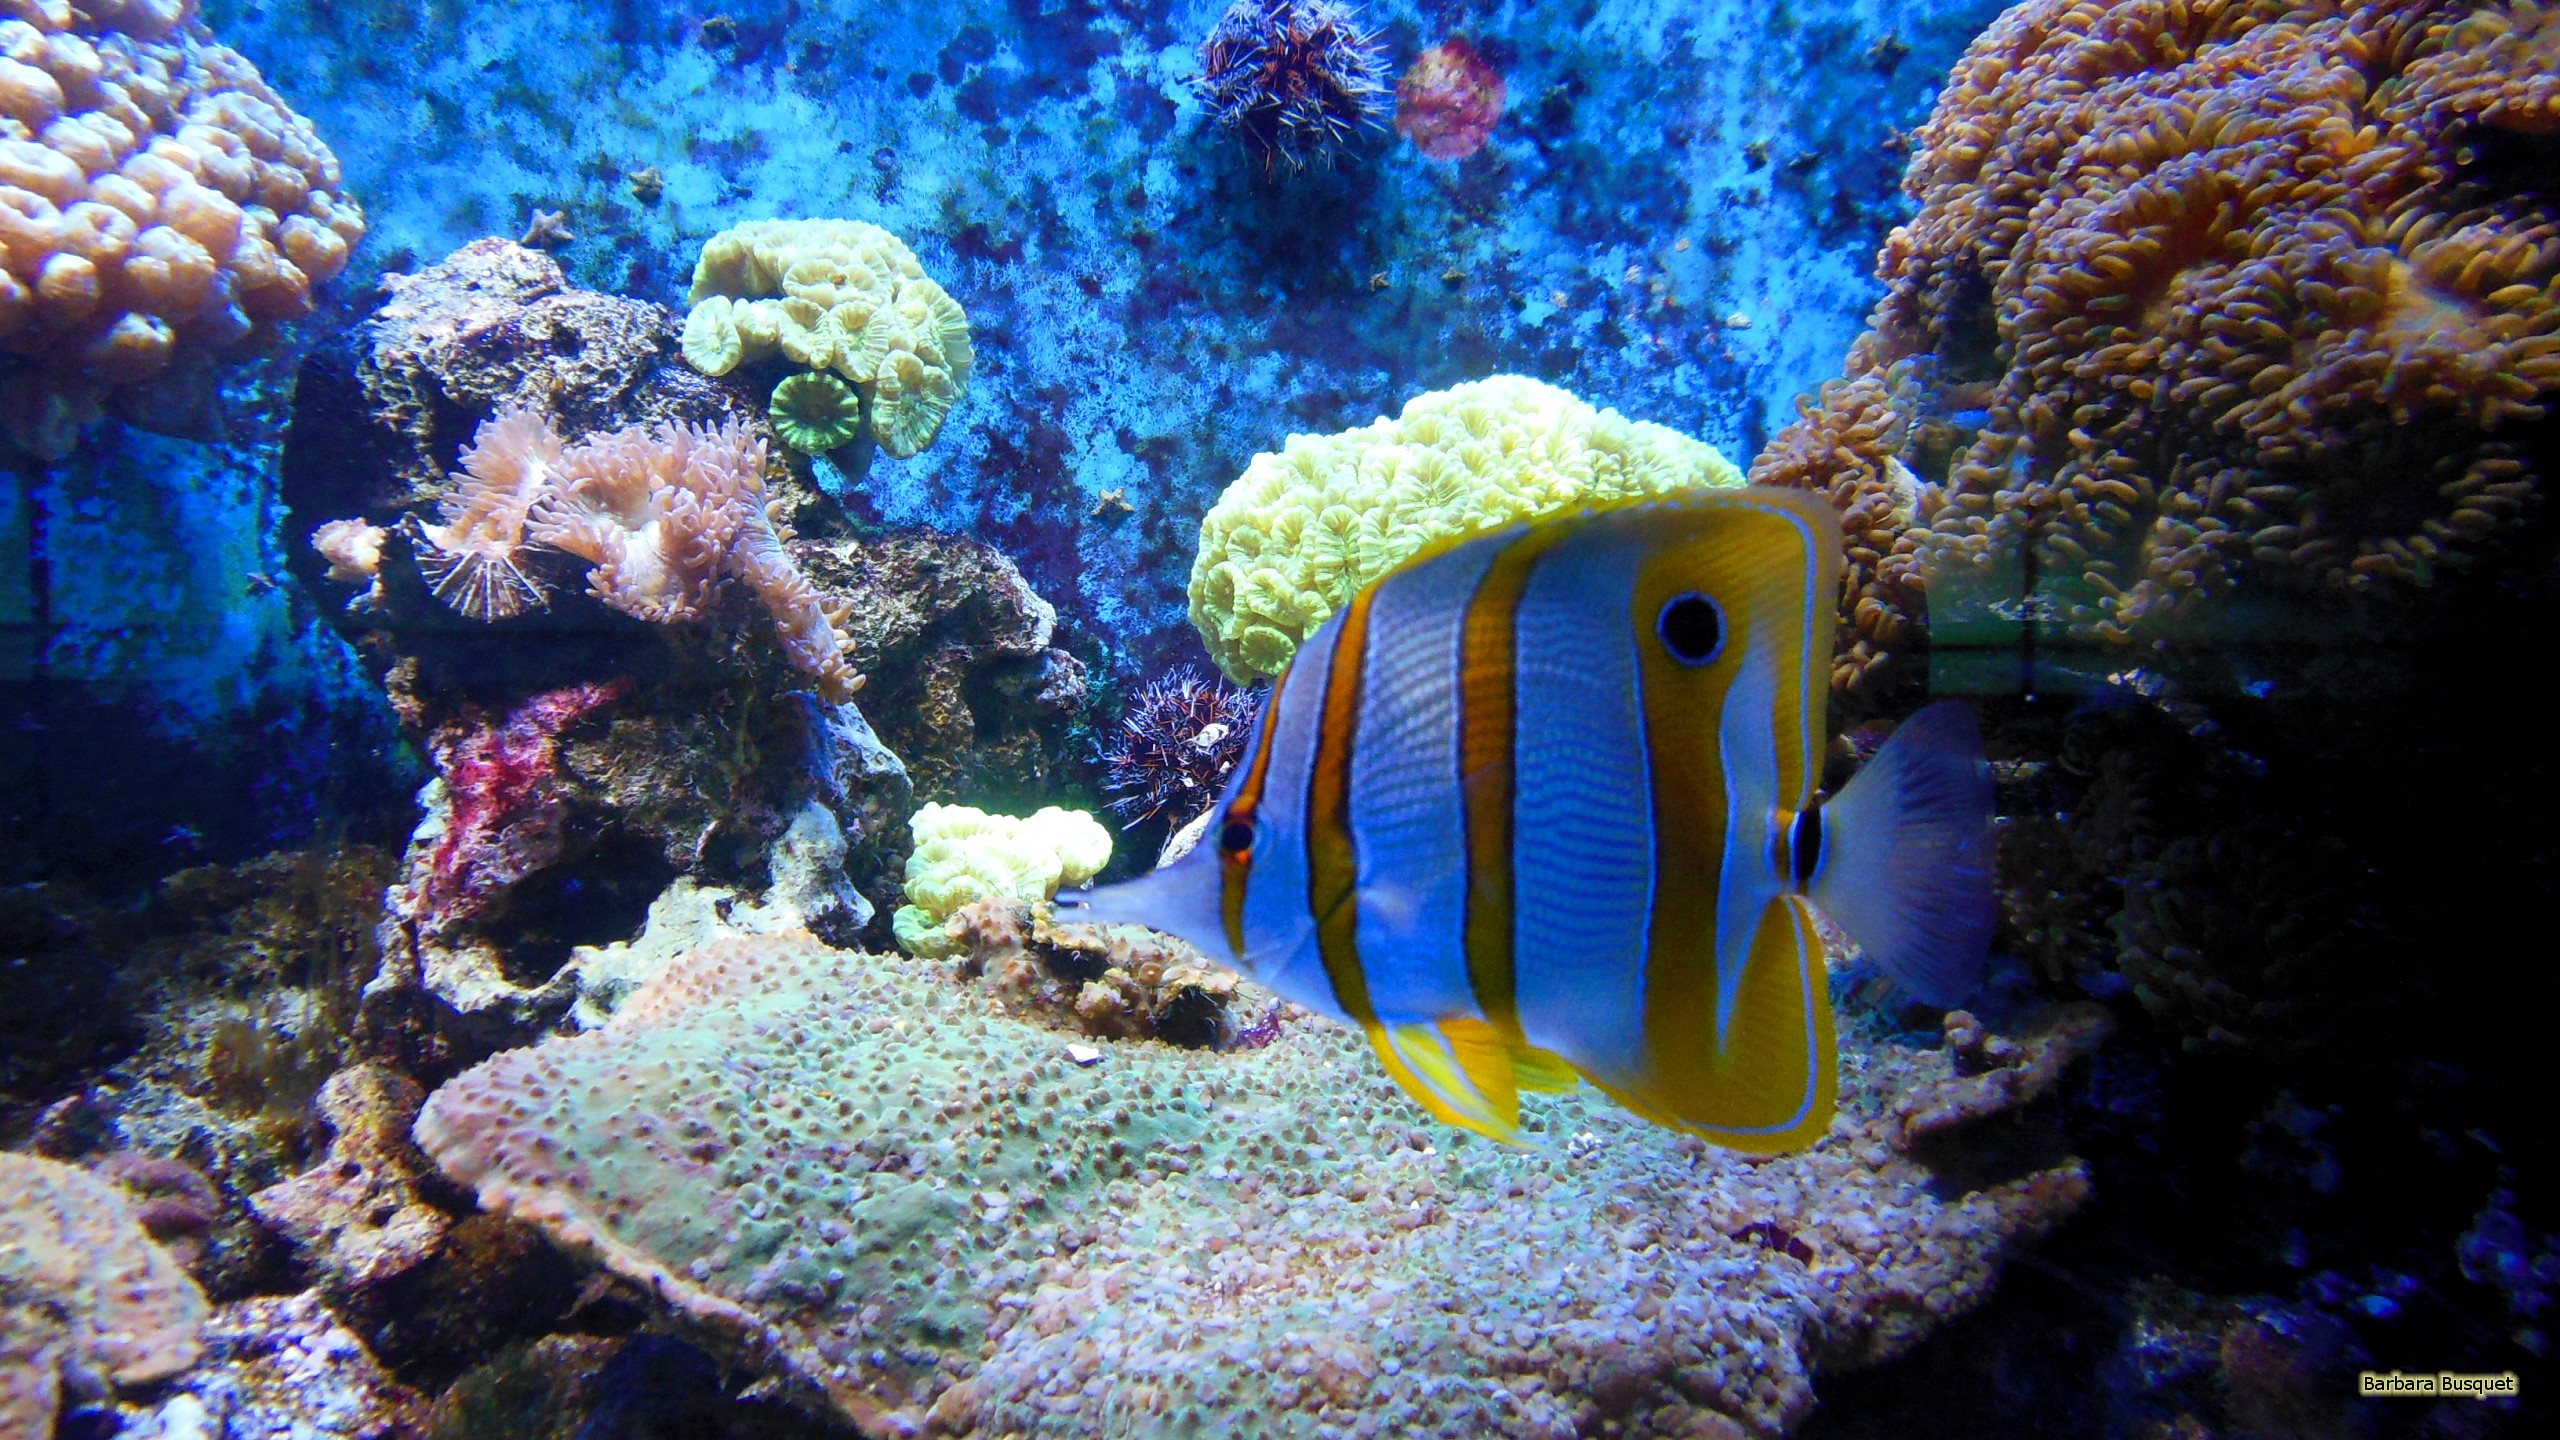 aquarium hd wallpaper - photo #27